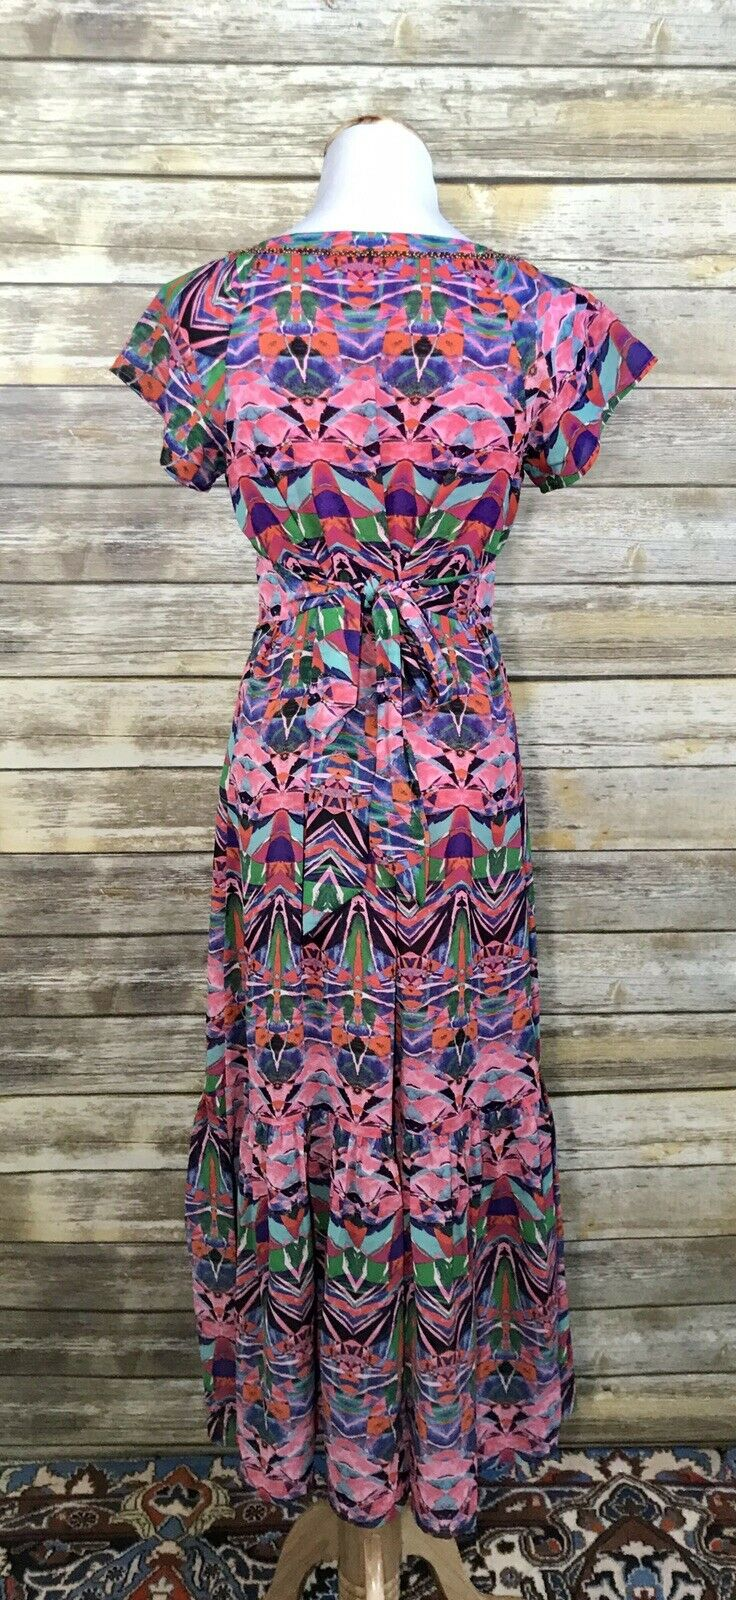 Anthropologie Vanessa Virginia Mural Maxi Dress Sz 2 2 2 Beaded  188 73da40